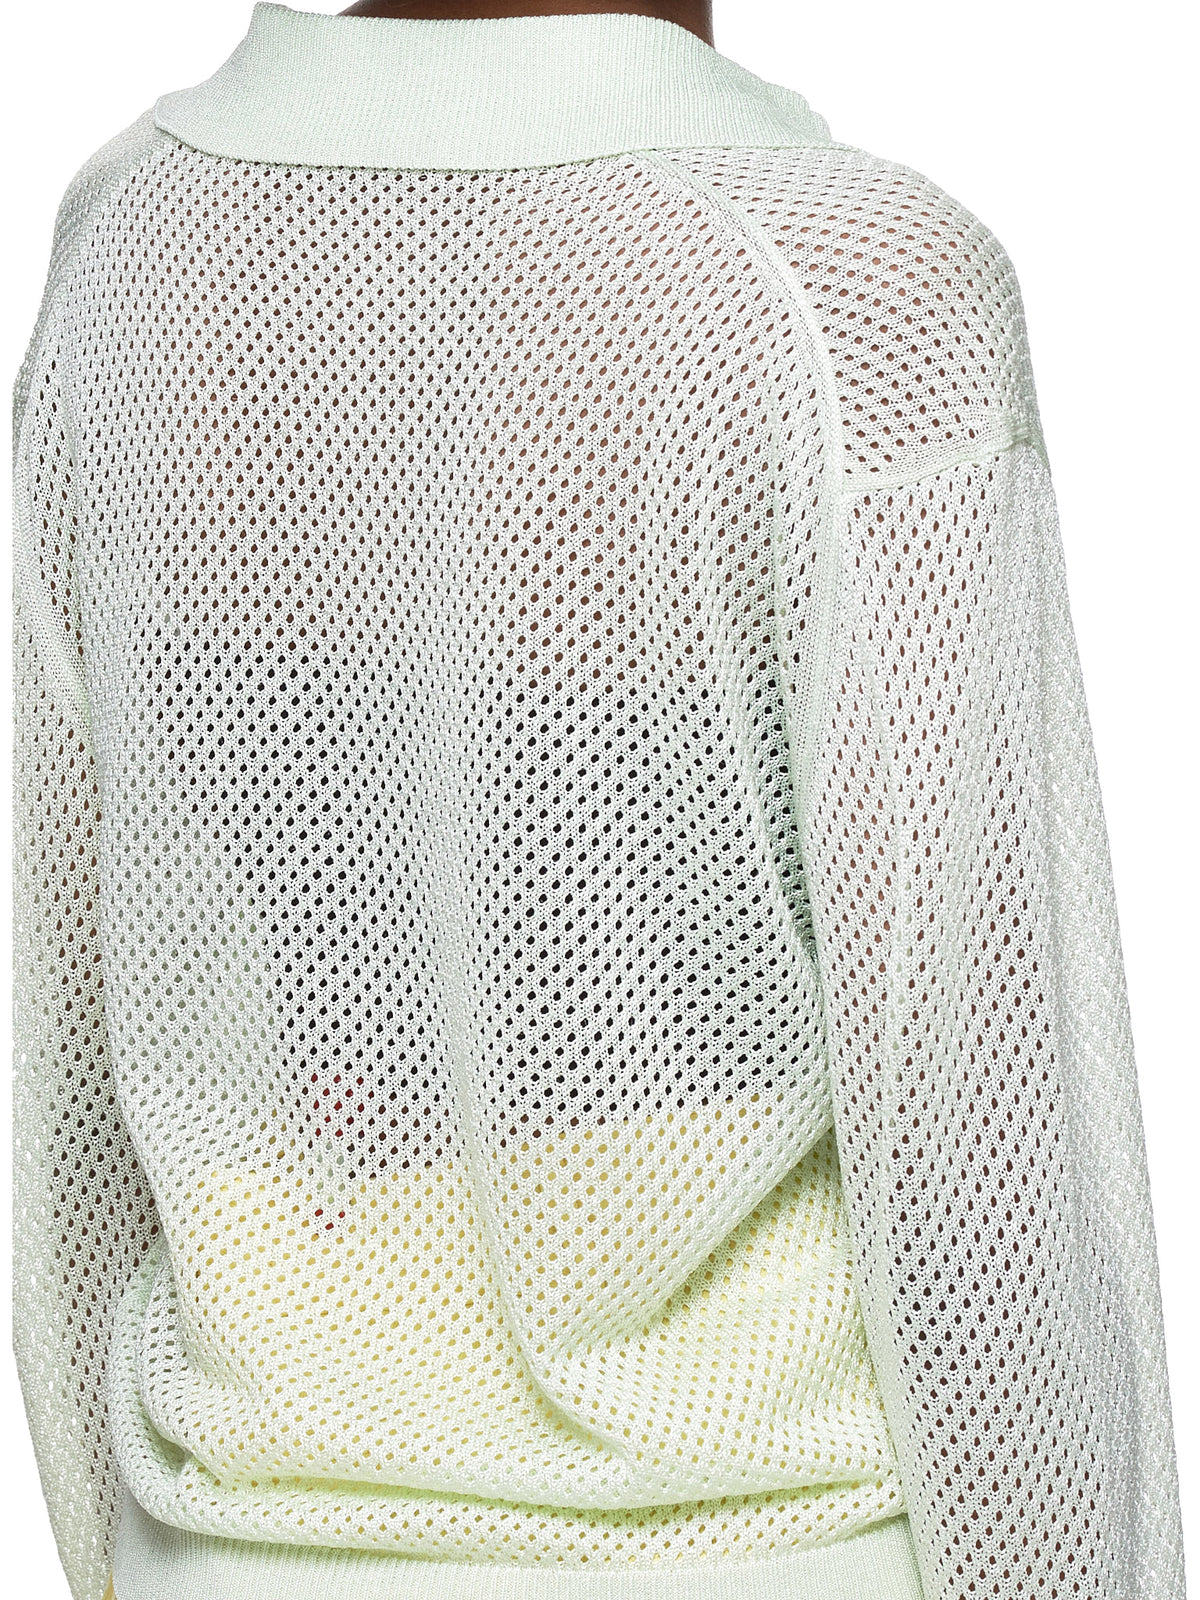 Tibi Top - Hlorenzo Detail 2